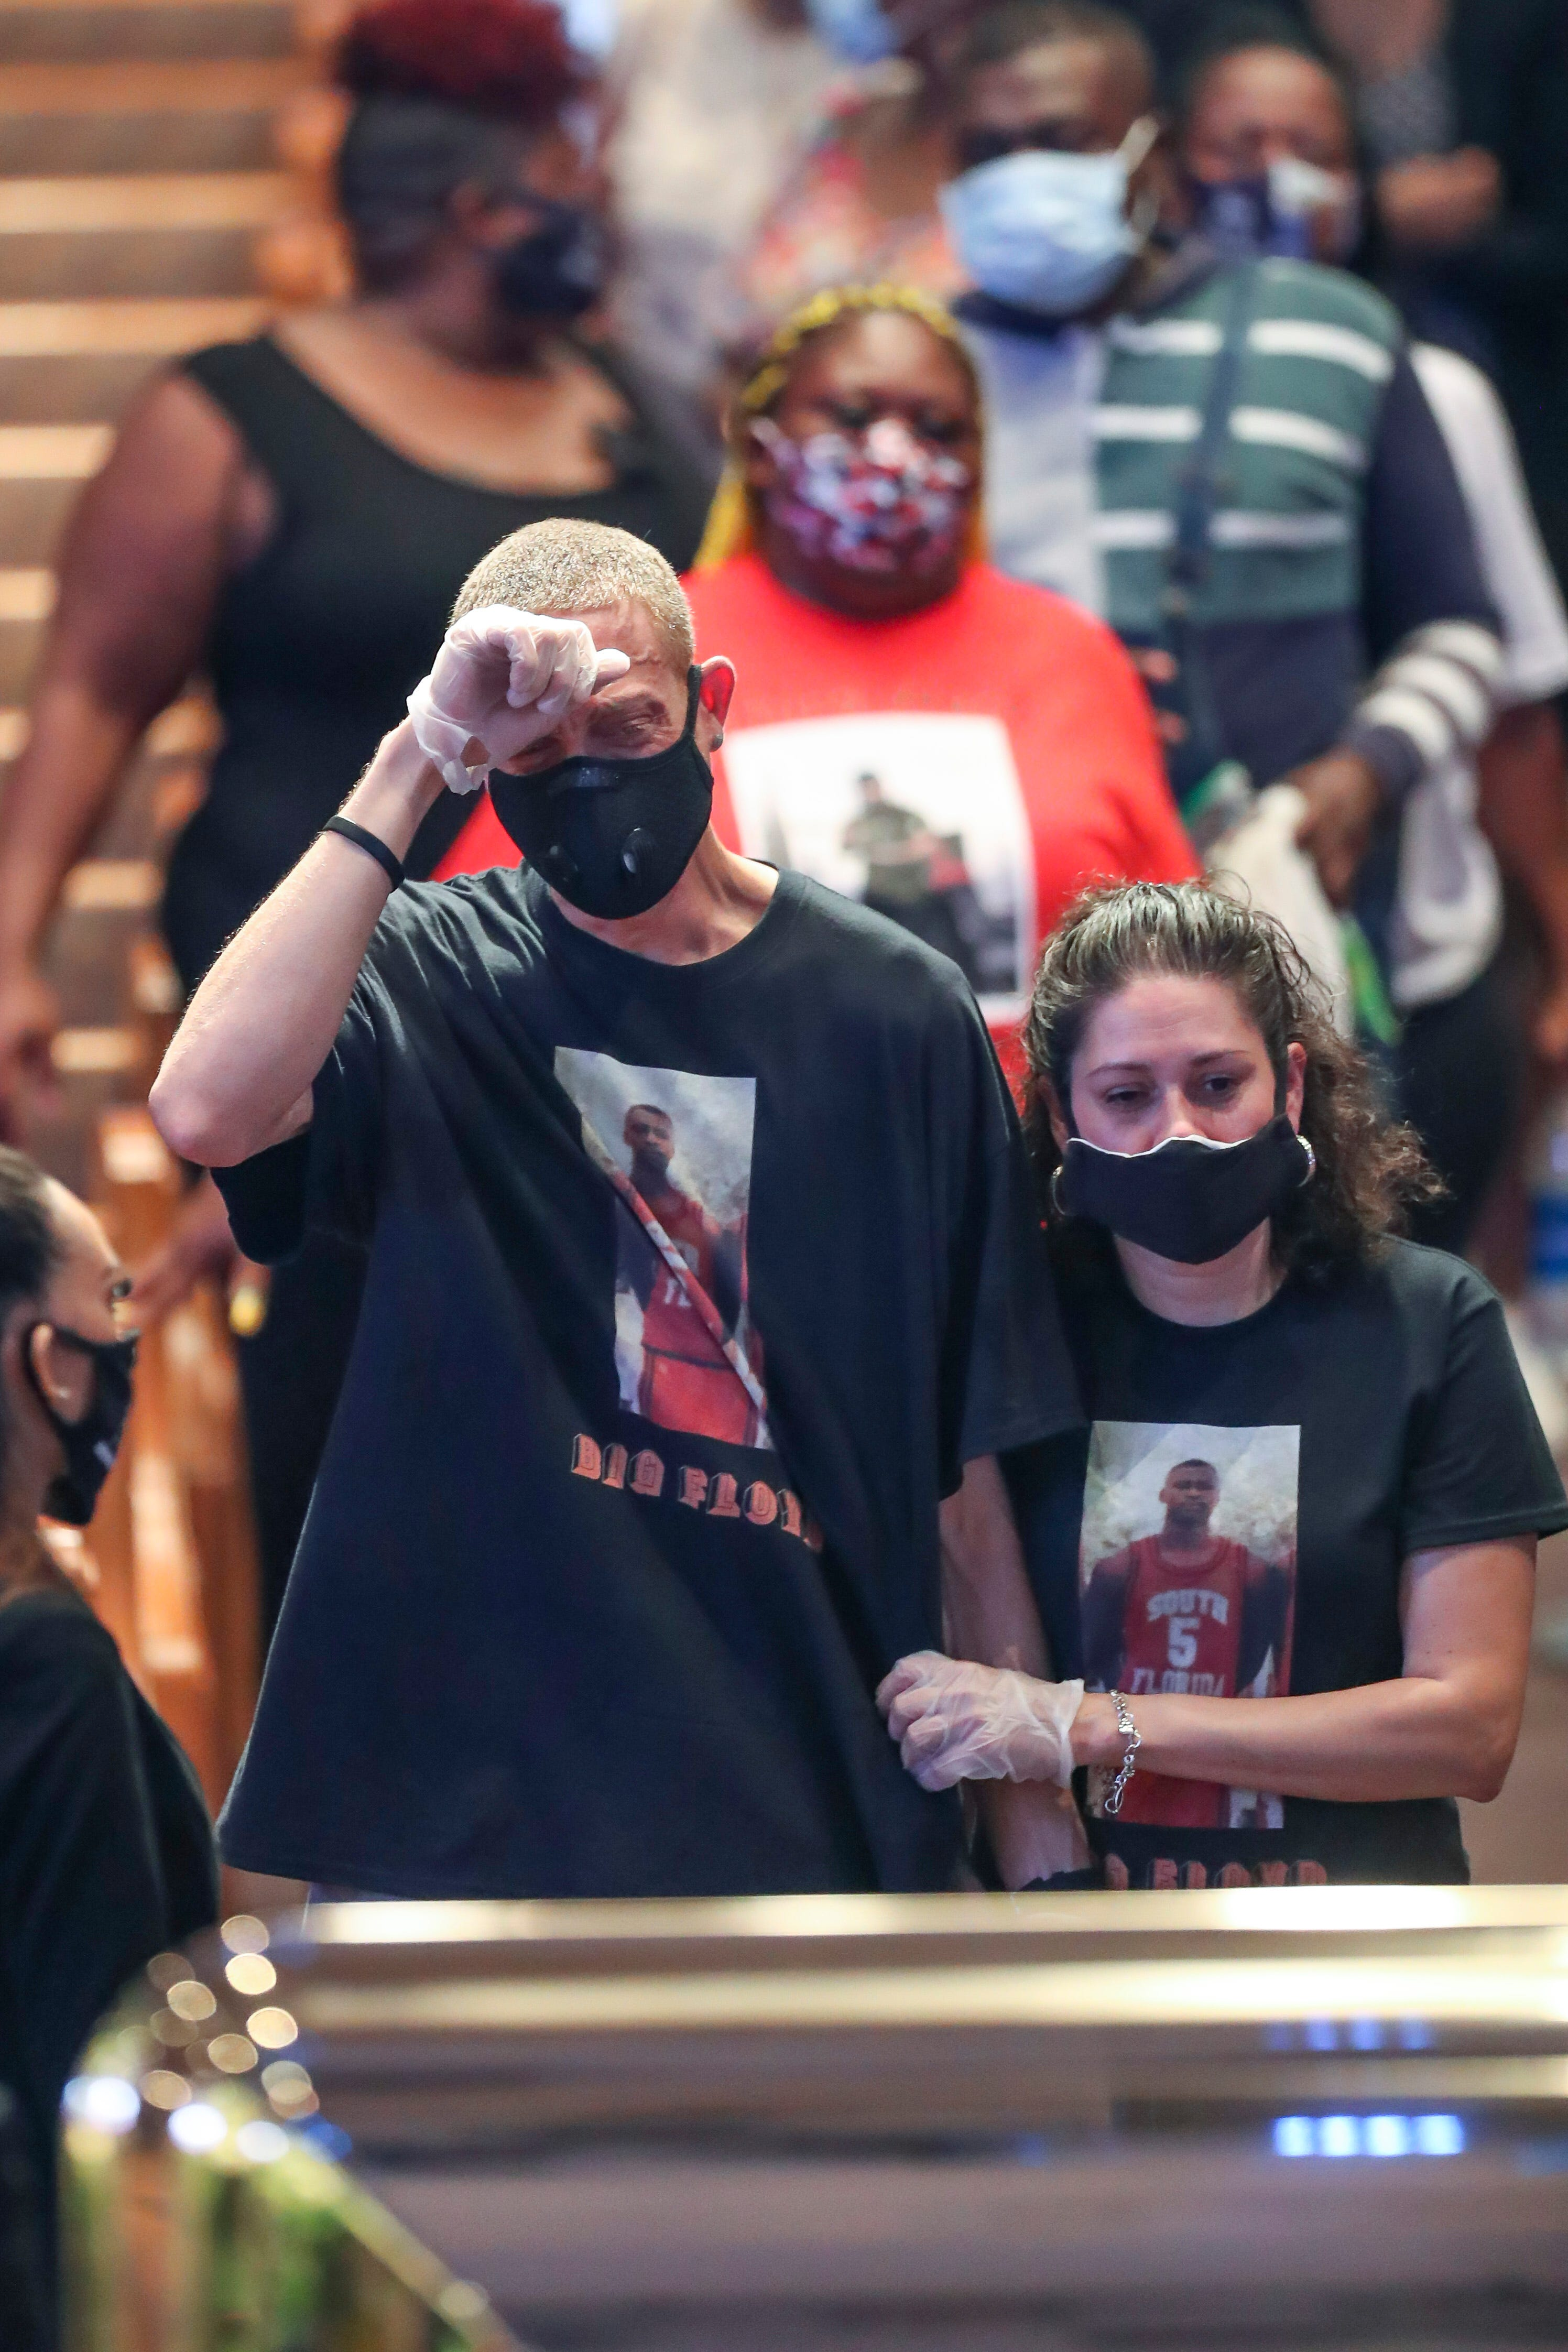 George Floyd death, protests lead to merchandise sales even on Amazon